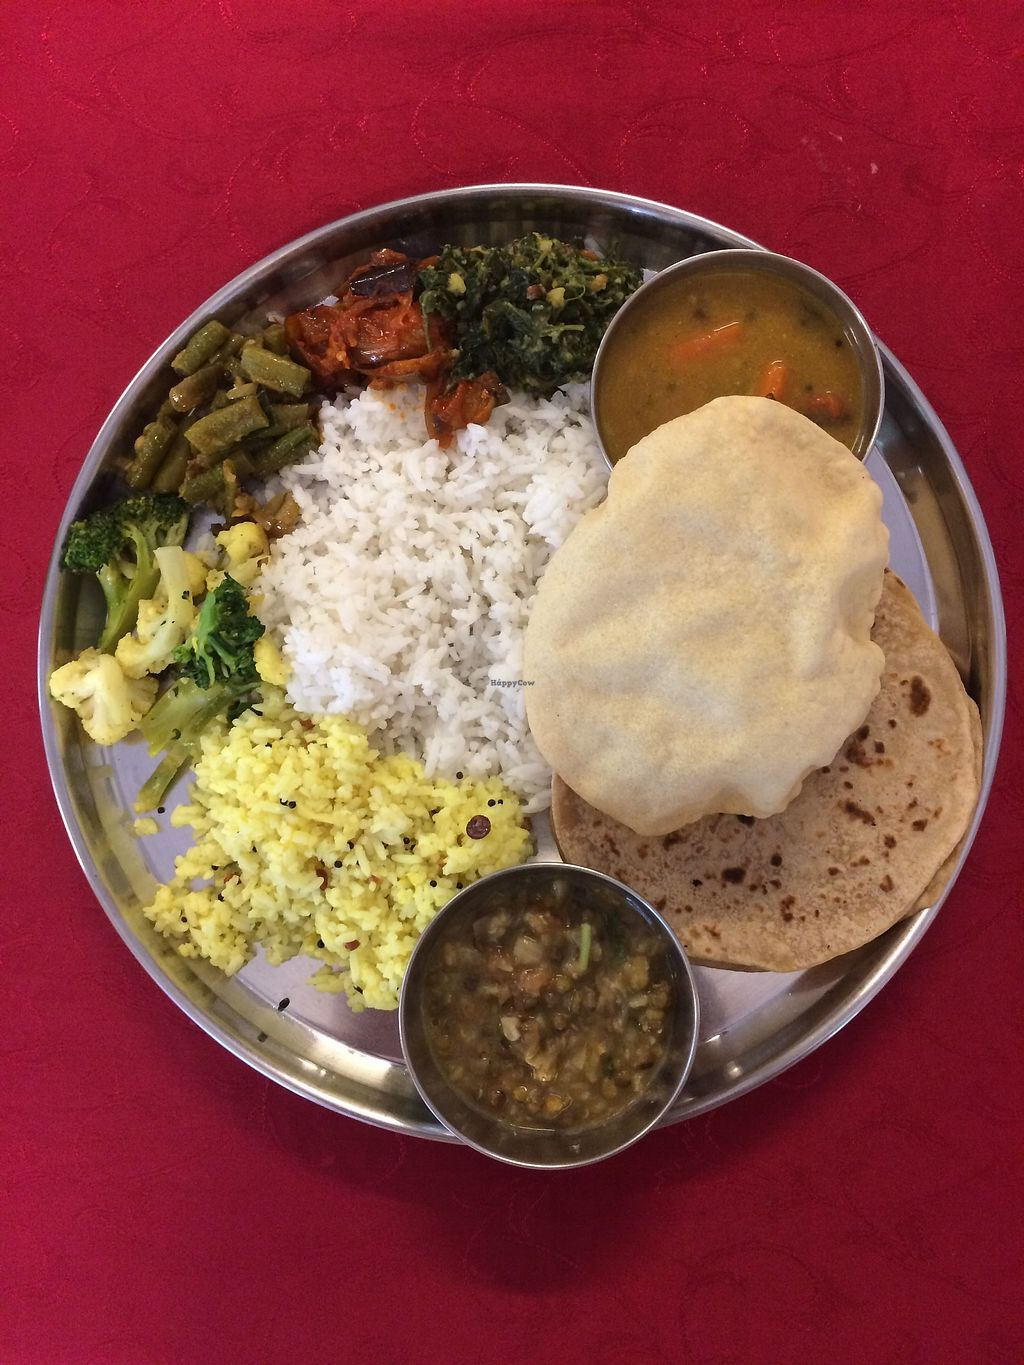 """Photo of Annalakshmi Restaurant  by <a href=""""/members/profile/LaurenceMontreuil"""">LaurenceMontreuil</a> <br/>typical plate <br/> March 13, 2018  - <a href='/contact/abuse/image/23250/370114'>Report</a>"""